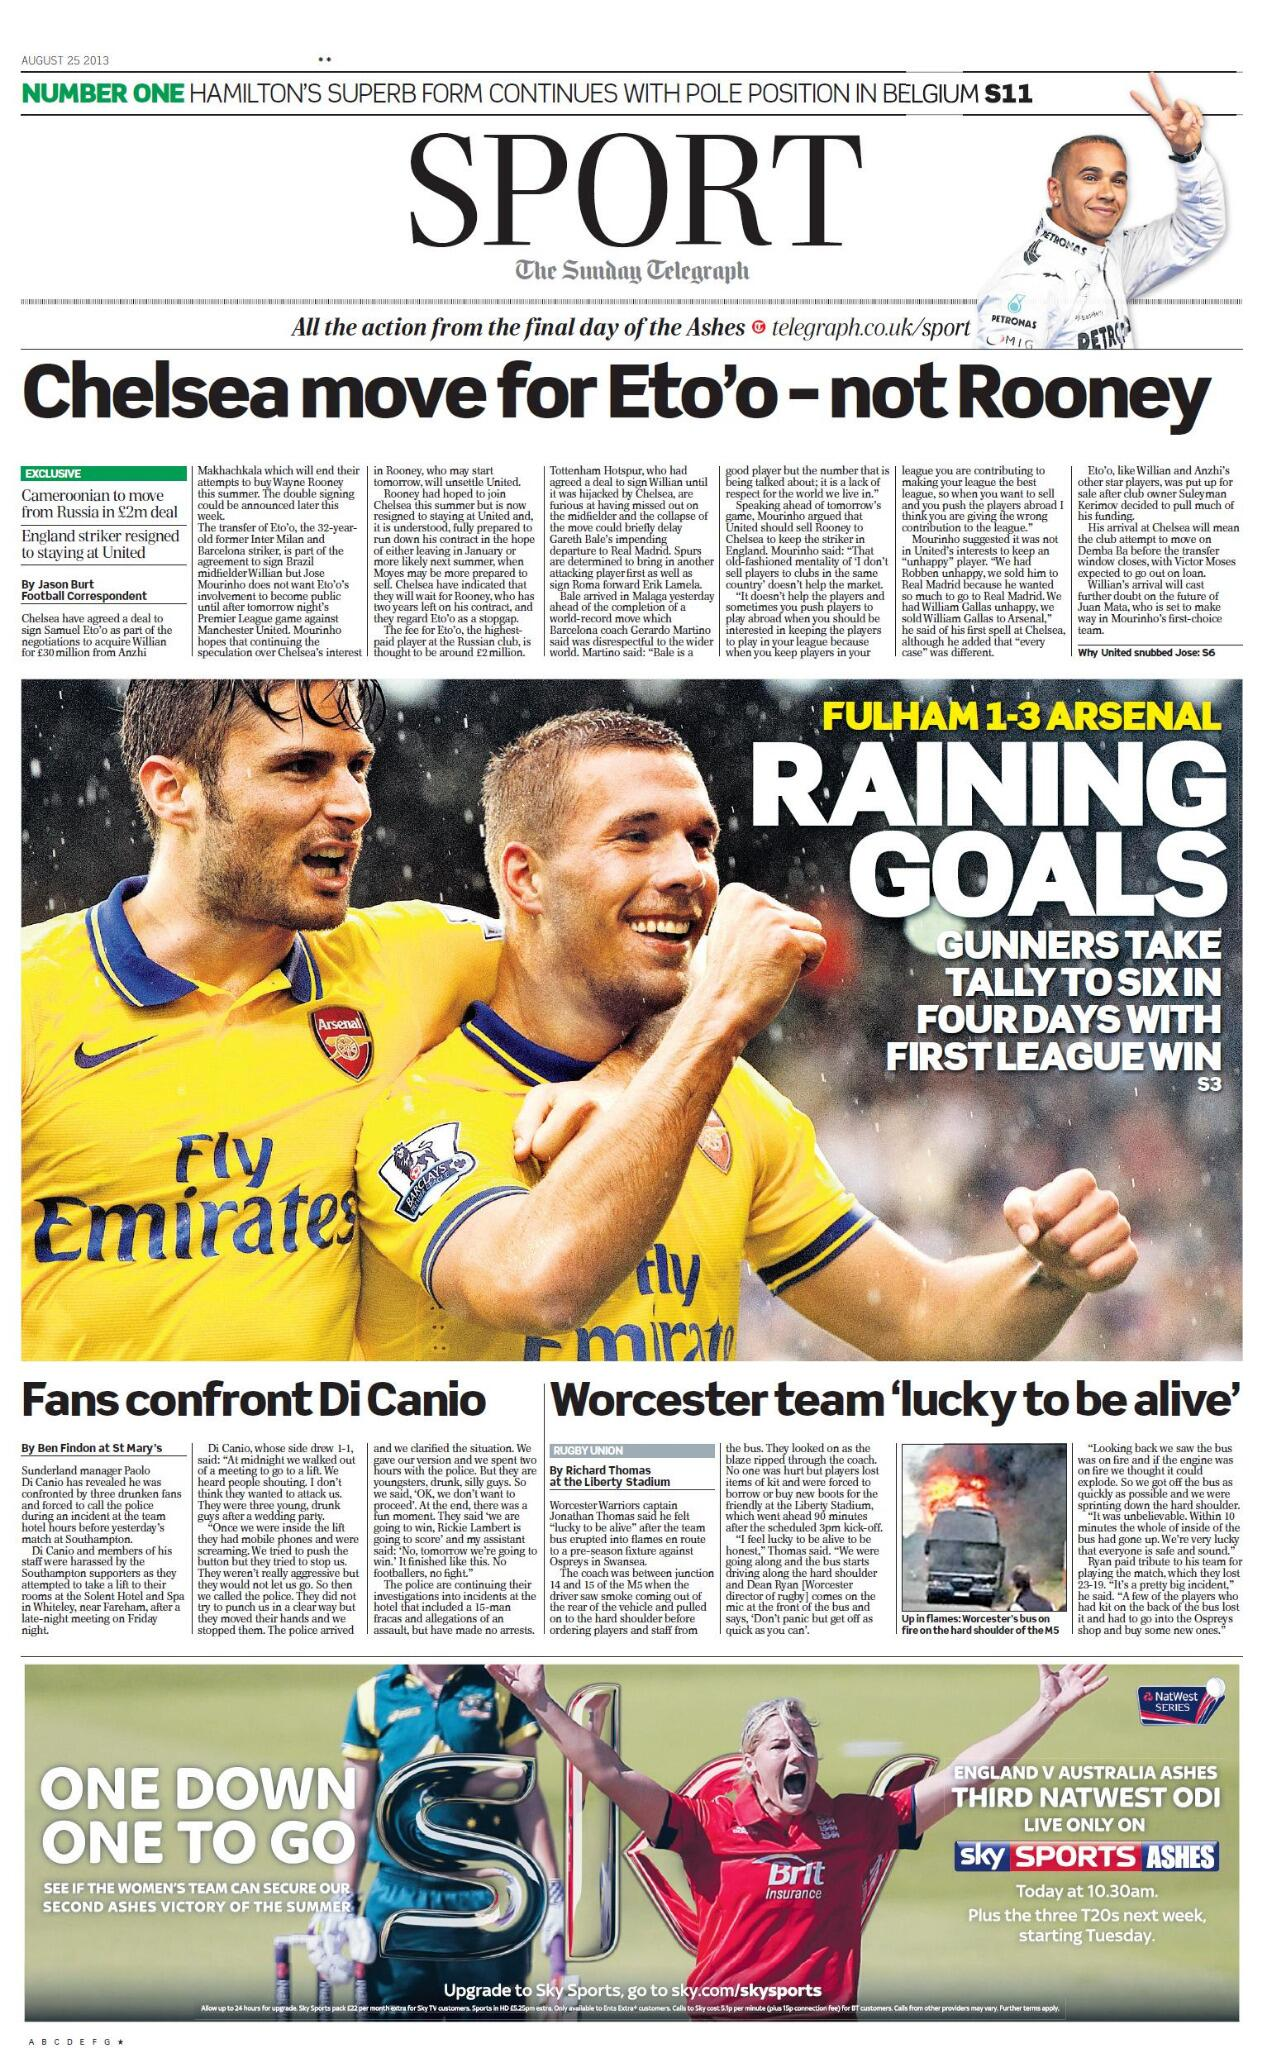 Rooney is staying at Man United as Chelsea sign £2m Etoo in Willian deal [Mail & Telegraph]